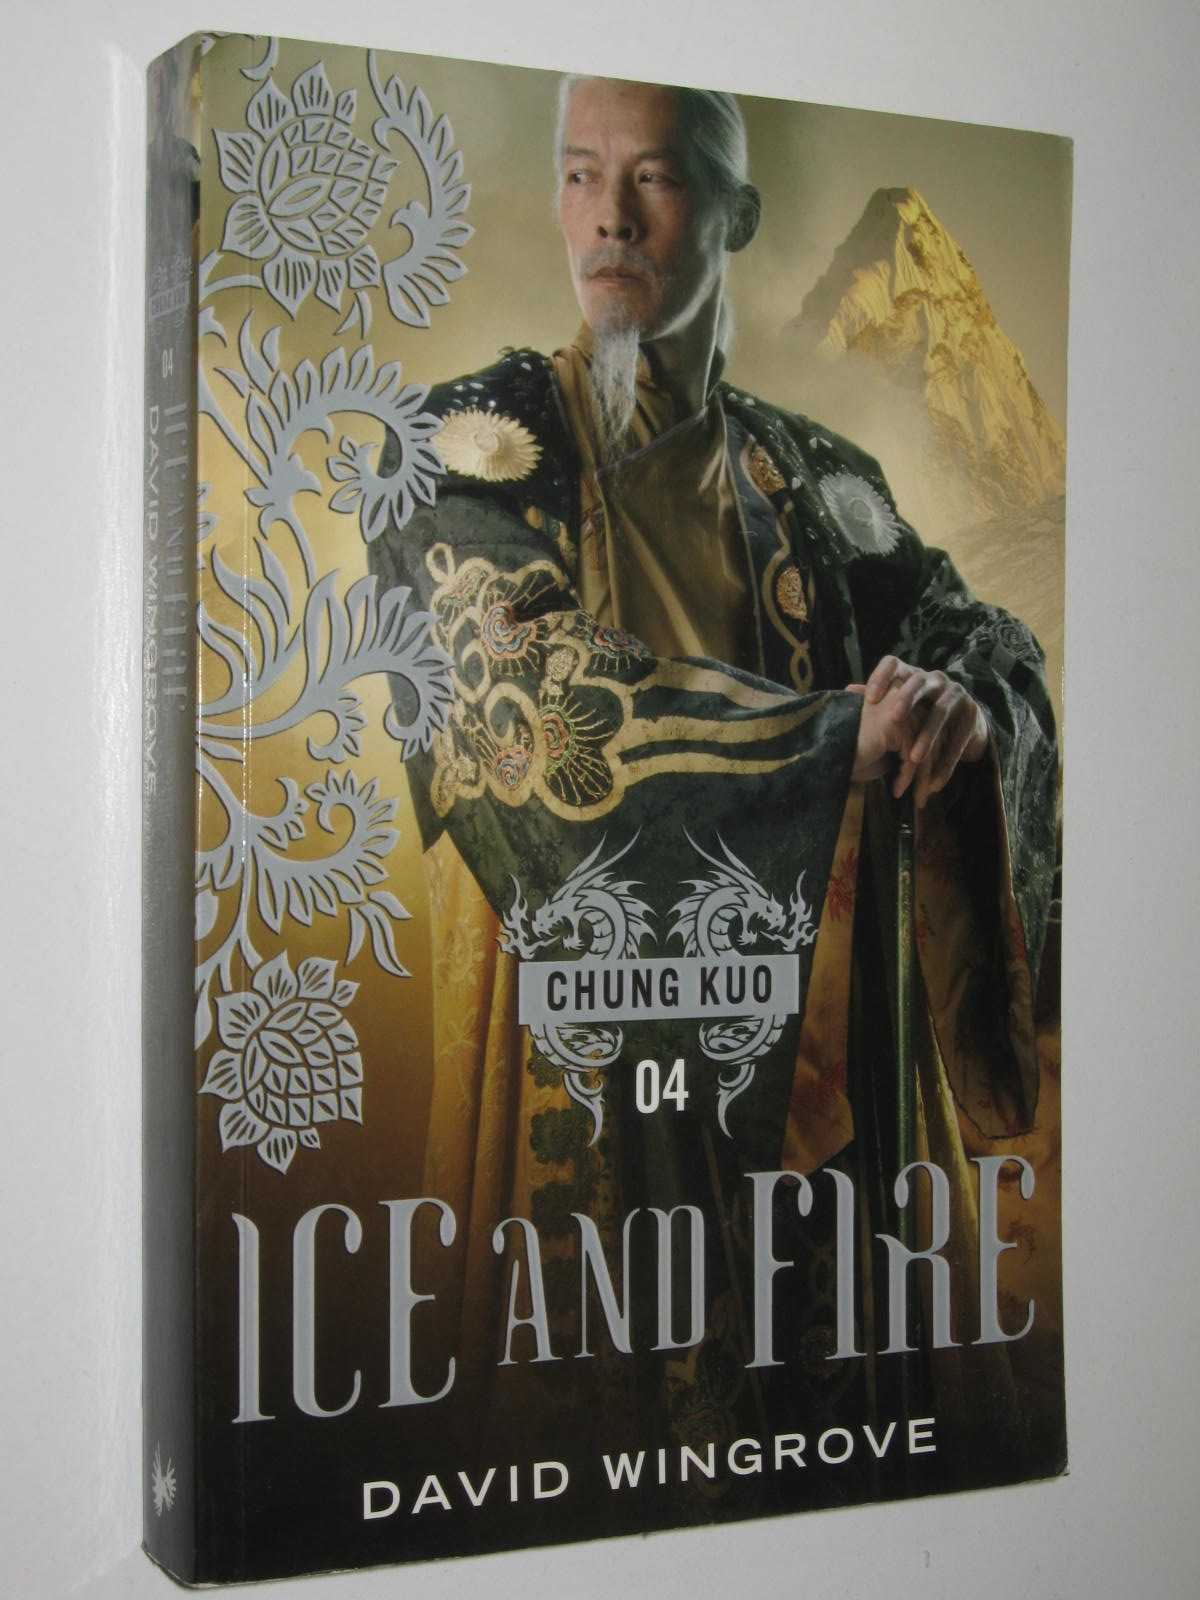 Image for Ice and Fire - Chung Kuo Series #4